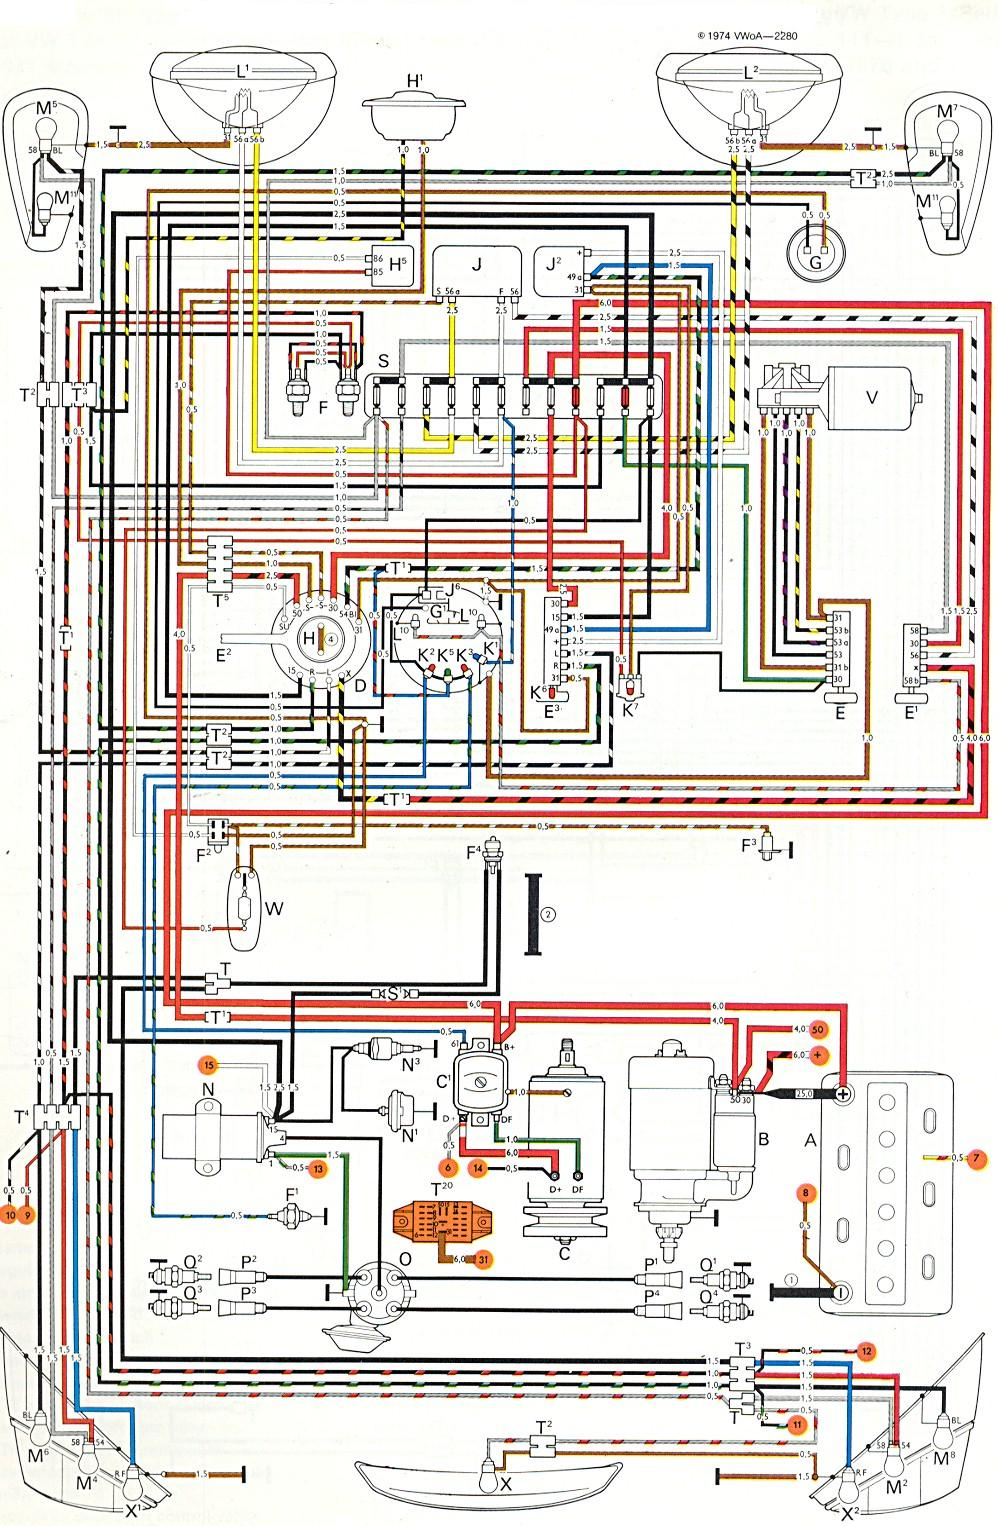 medium resolution of 1958 vw bug wiring diagram wiring schematic data 2001 volkswagen beetle wiring diagram 1976 vw beetle